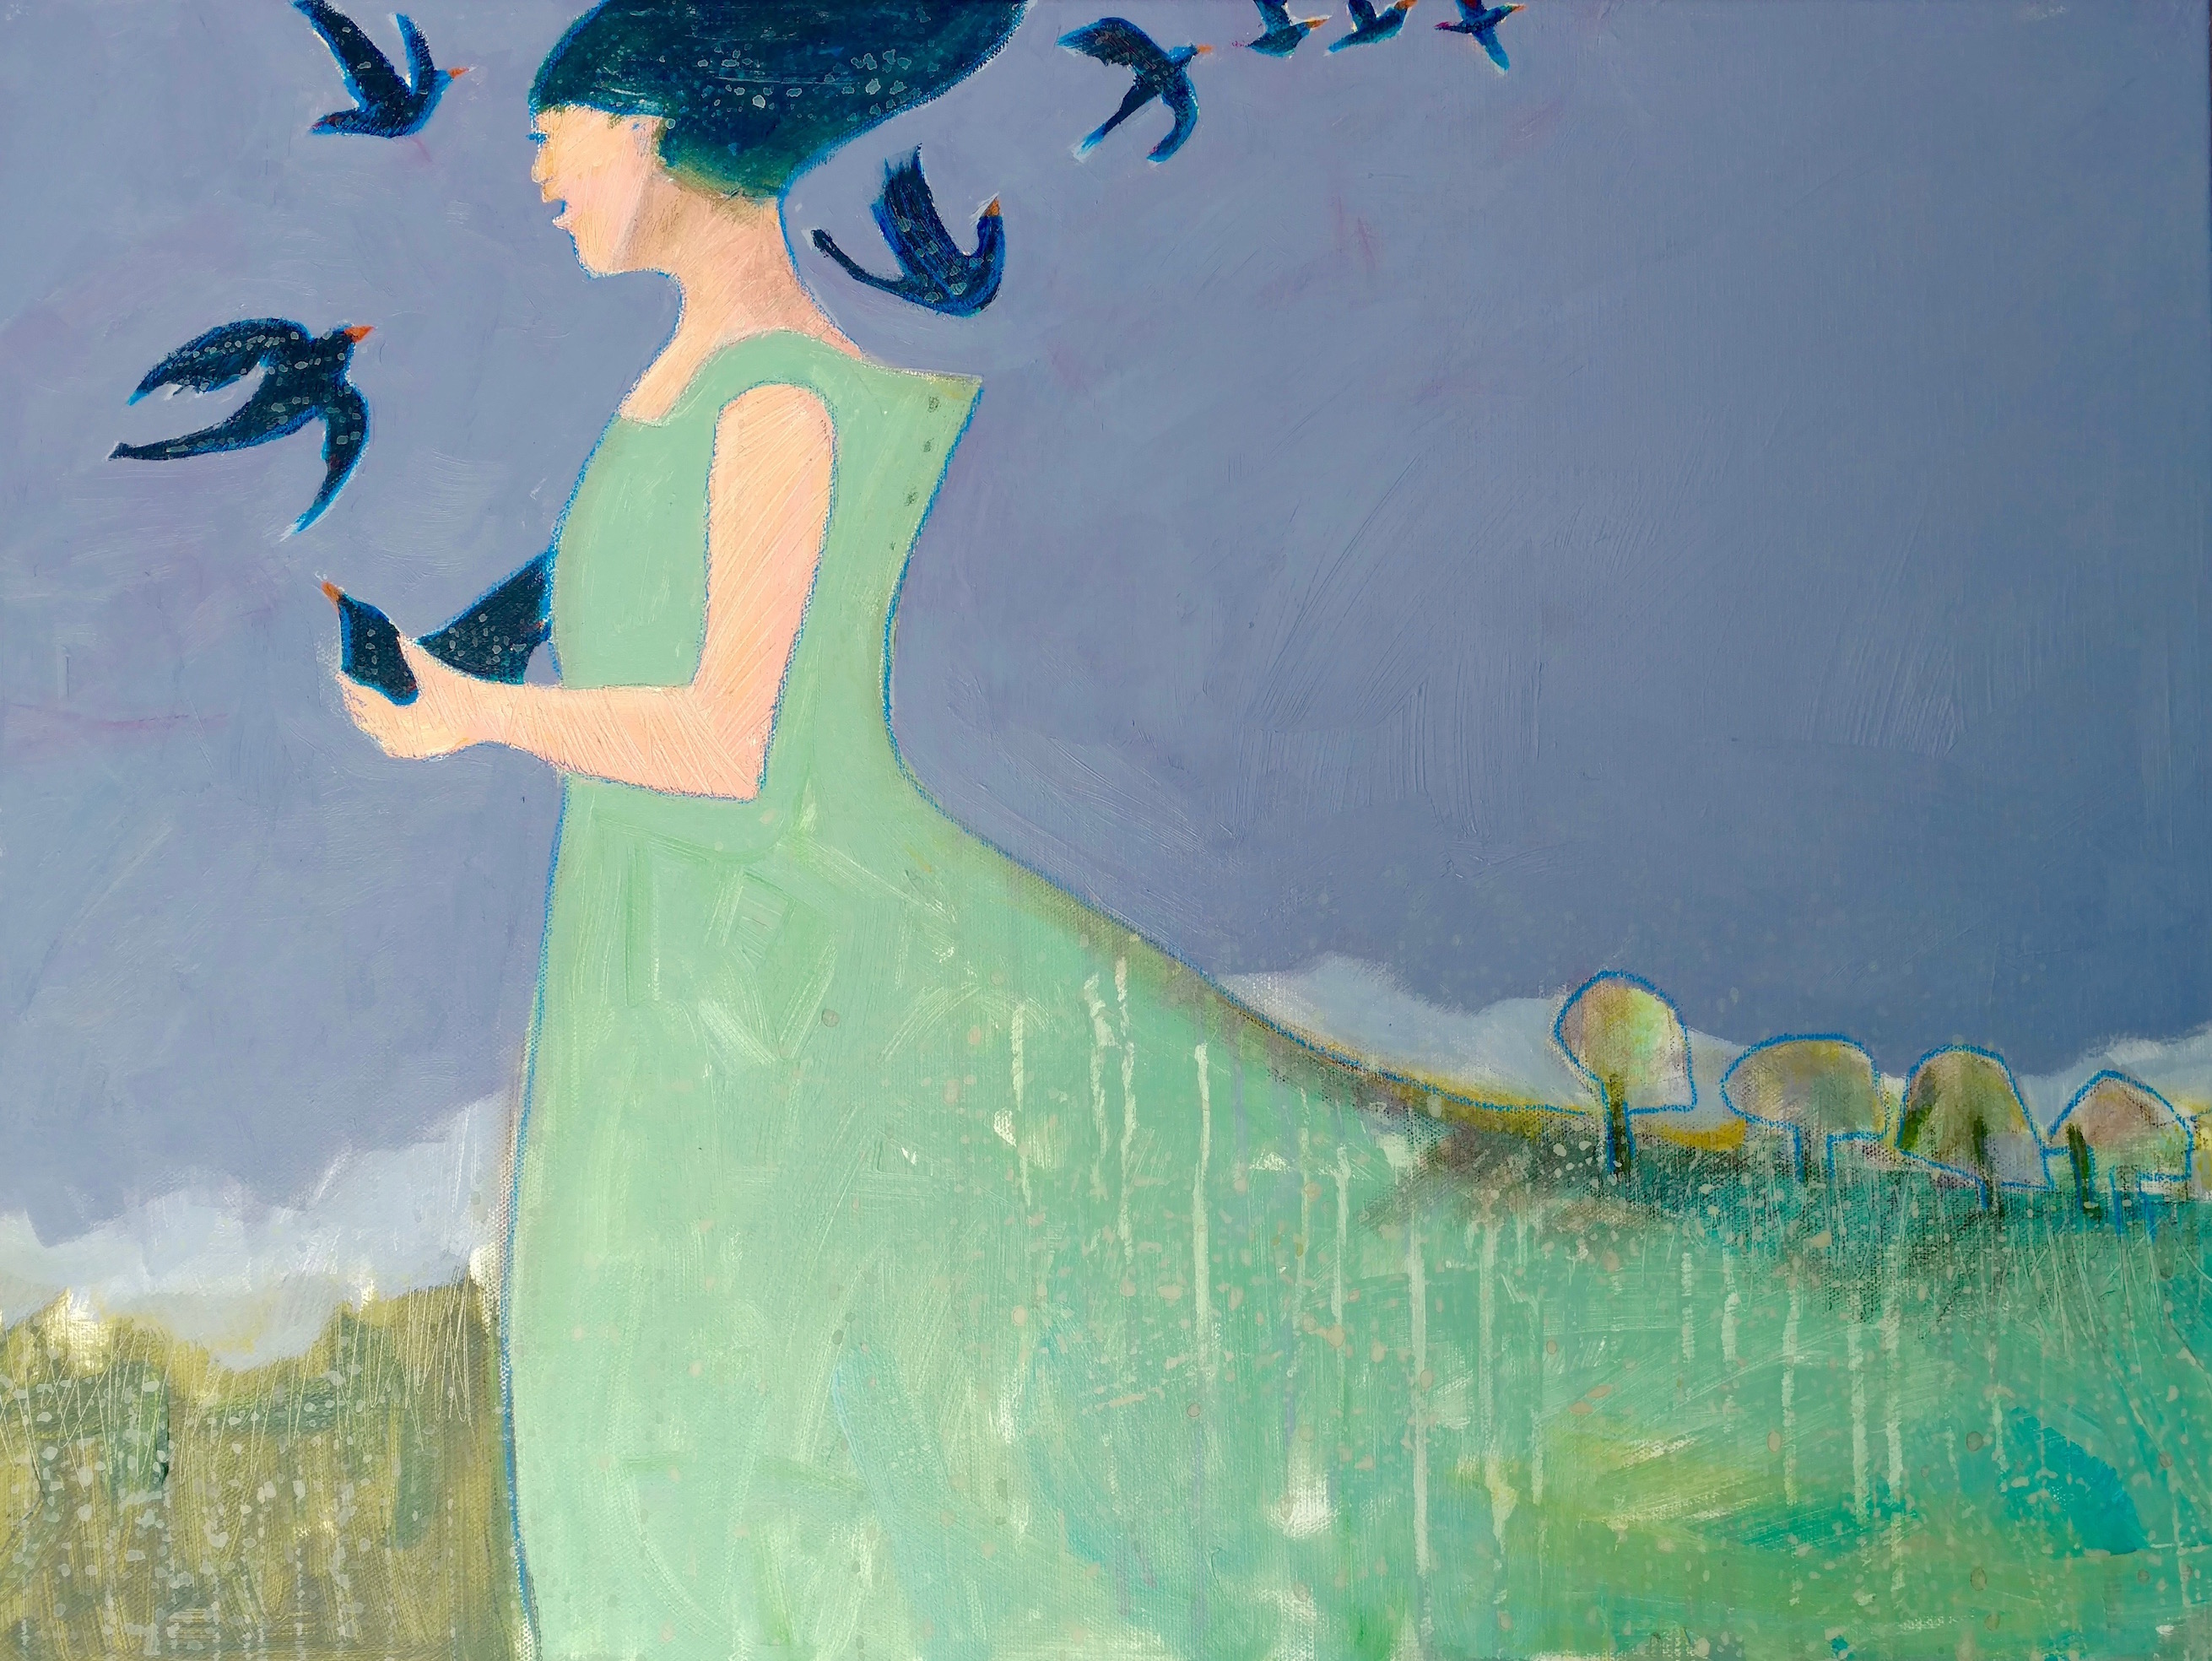 Black Birds Fly by  Peggy McGivern - Masterpiece Online